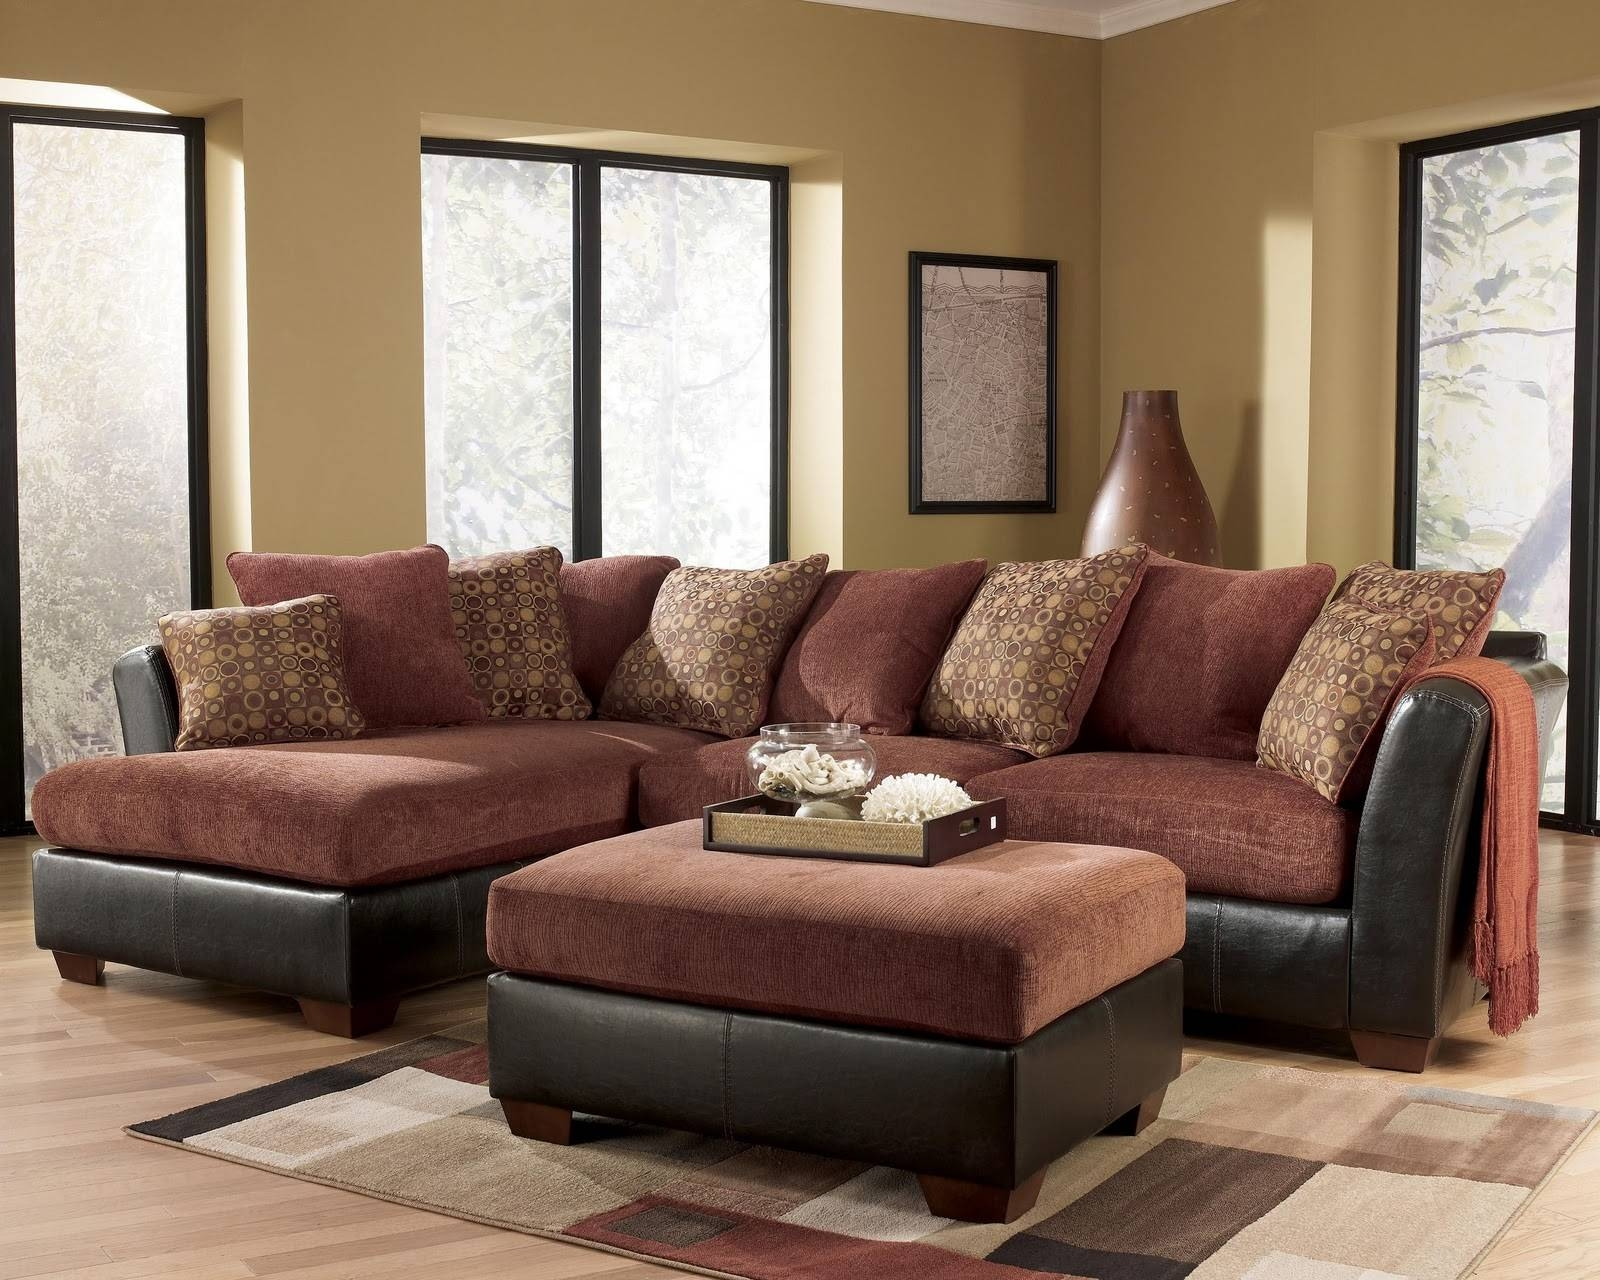 Ashley Furniture Commando Black Sofa | Centerfieldbar regarding Ashley Furniture Leather Sectional Sofas (Image 1 of 15)